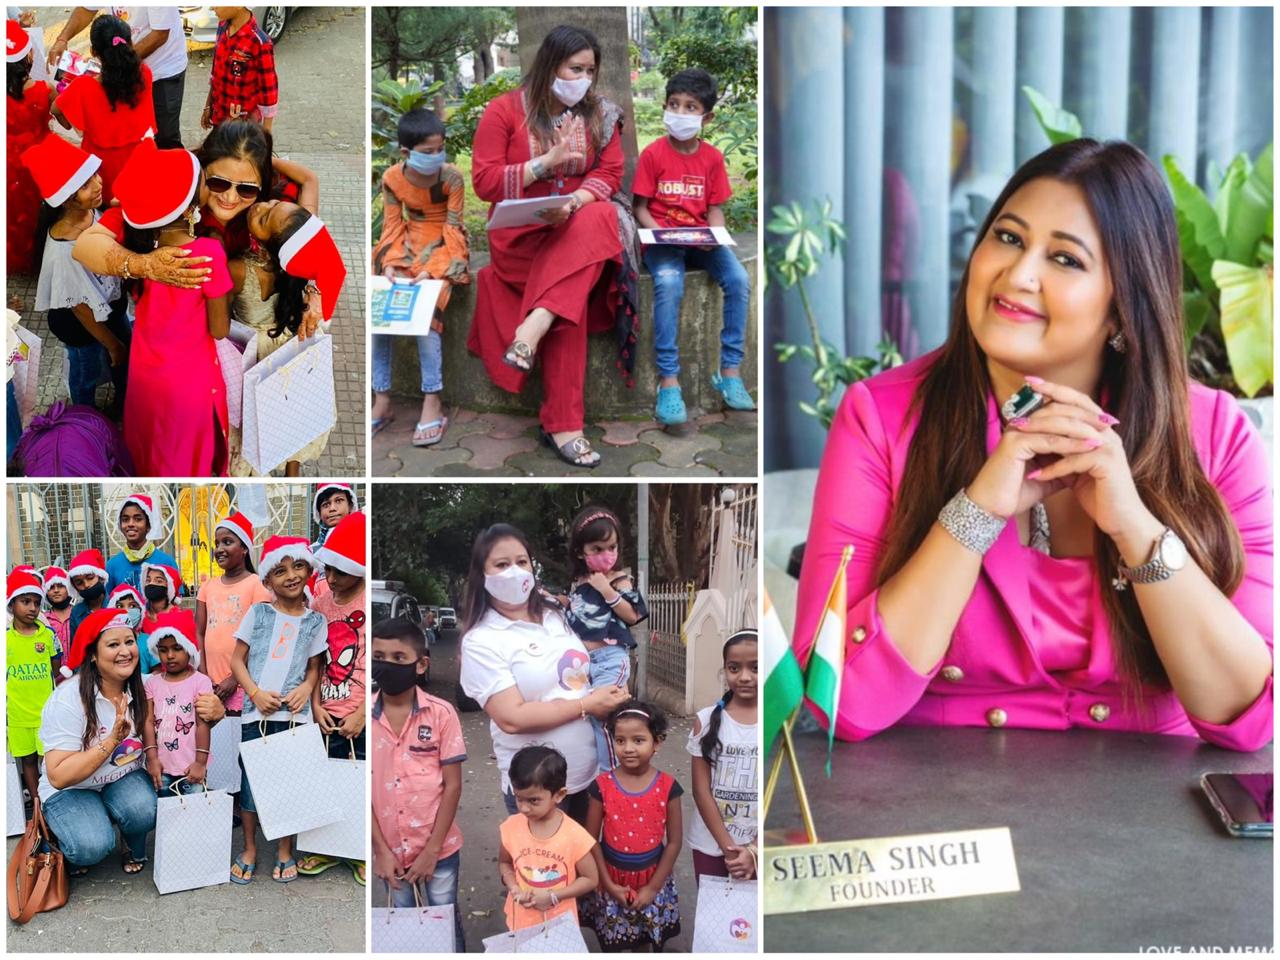 Meghashrey, an NGO founded by Seema Singh is spreading Happiness and Kindness amongst the underprivileged section in Mumbai